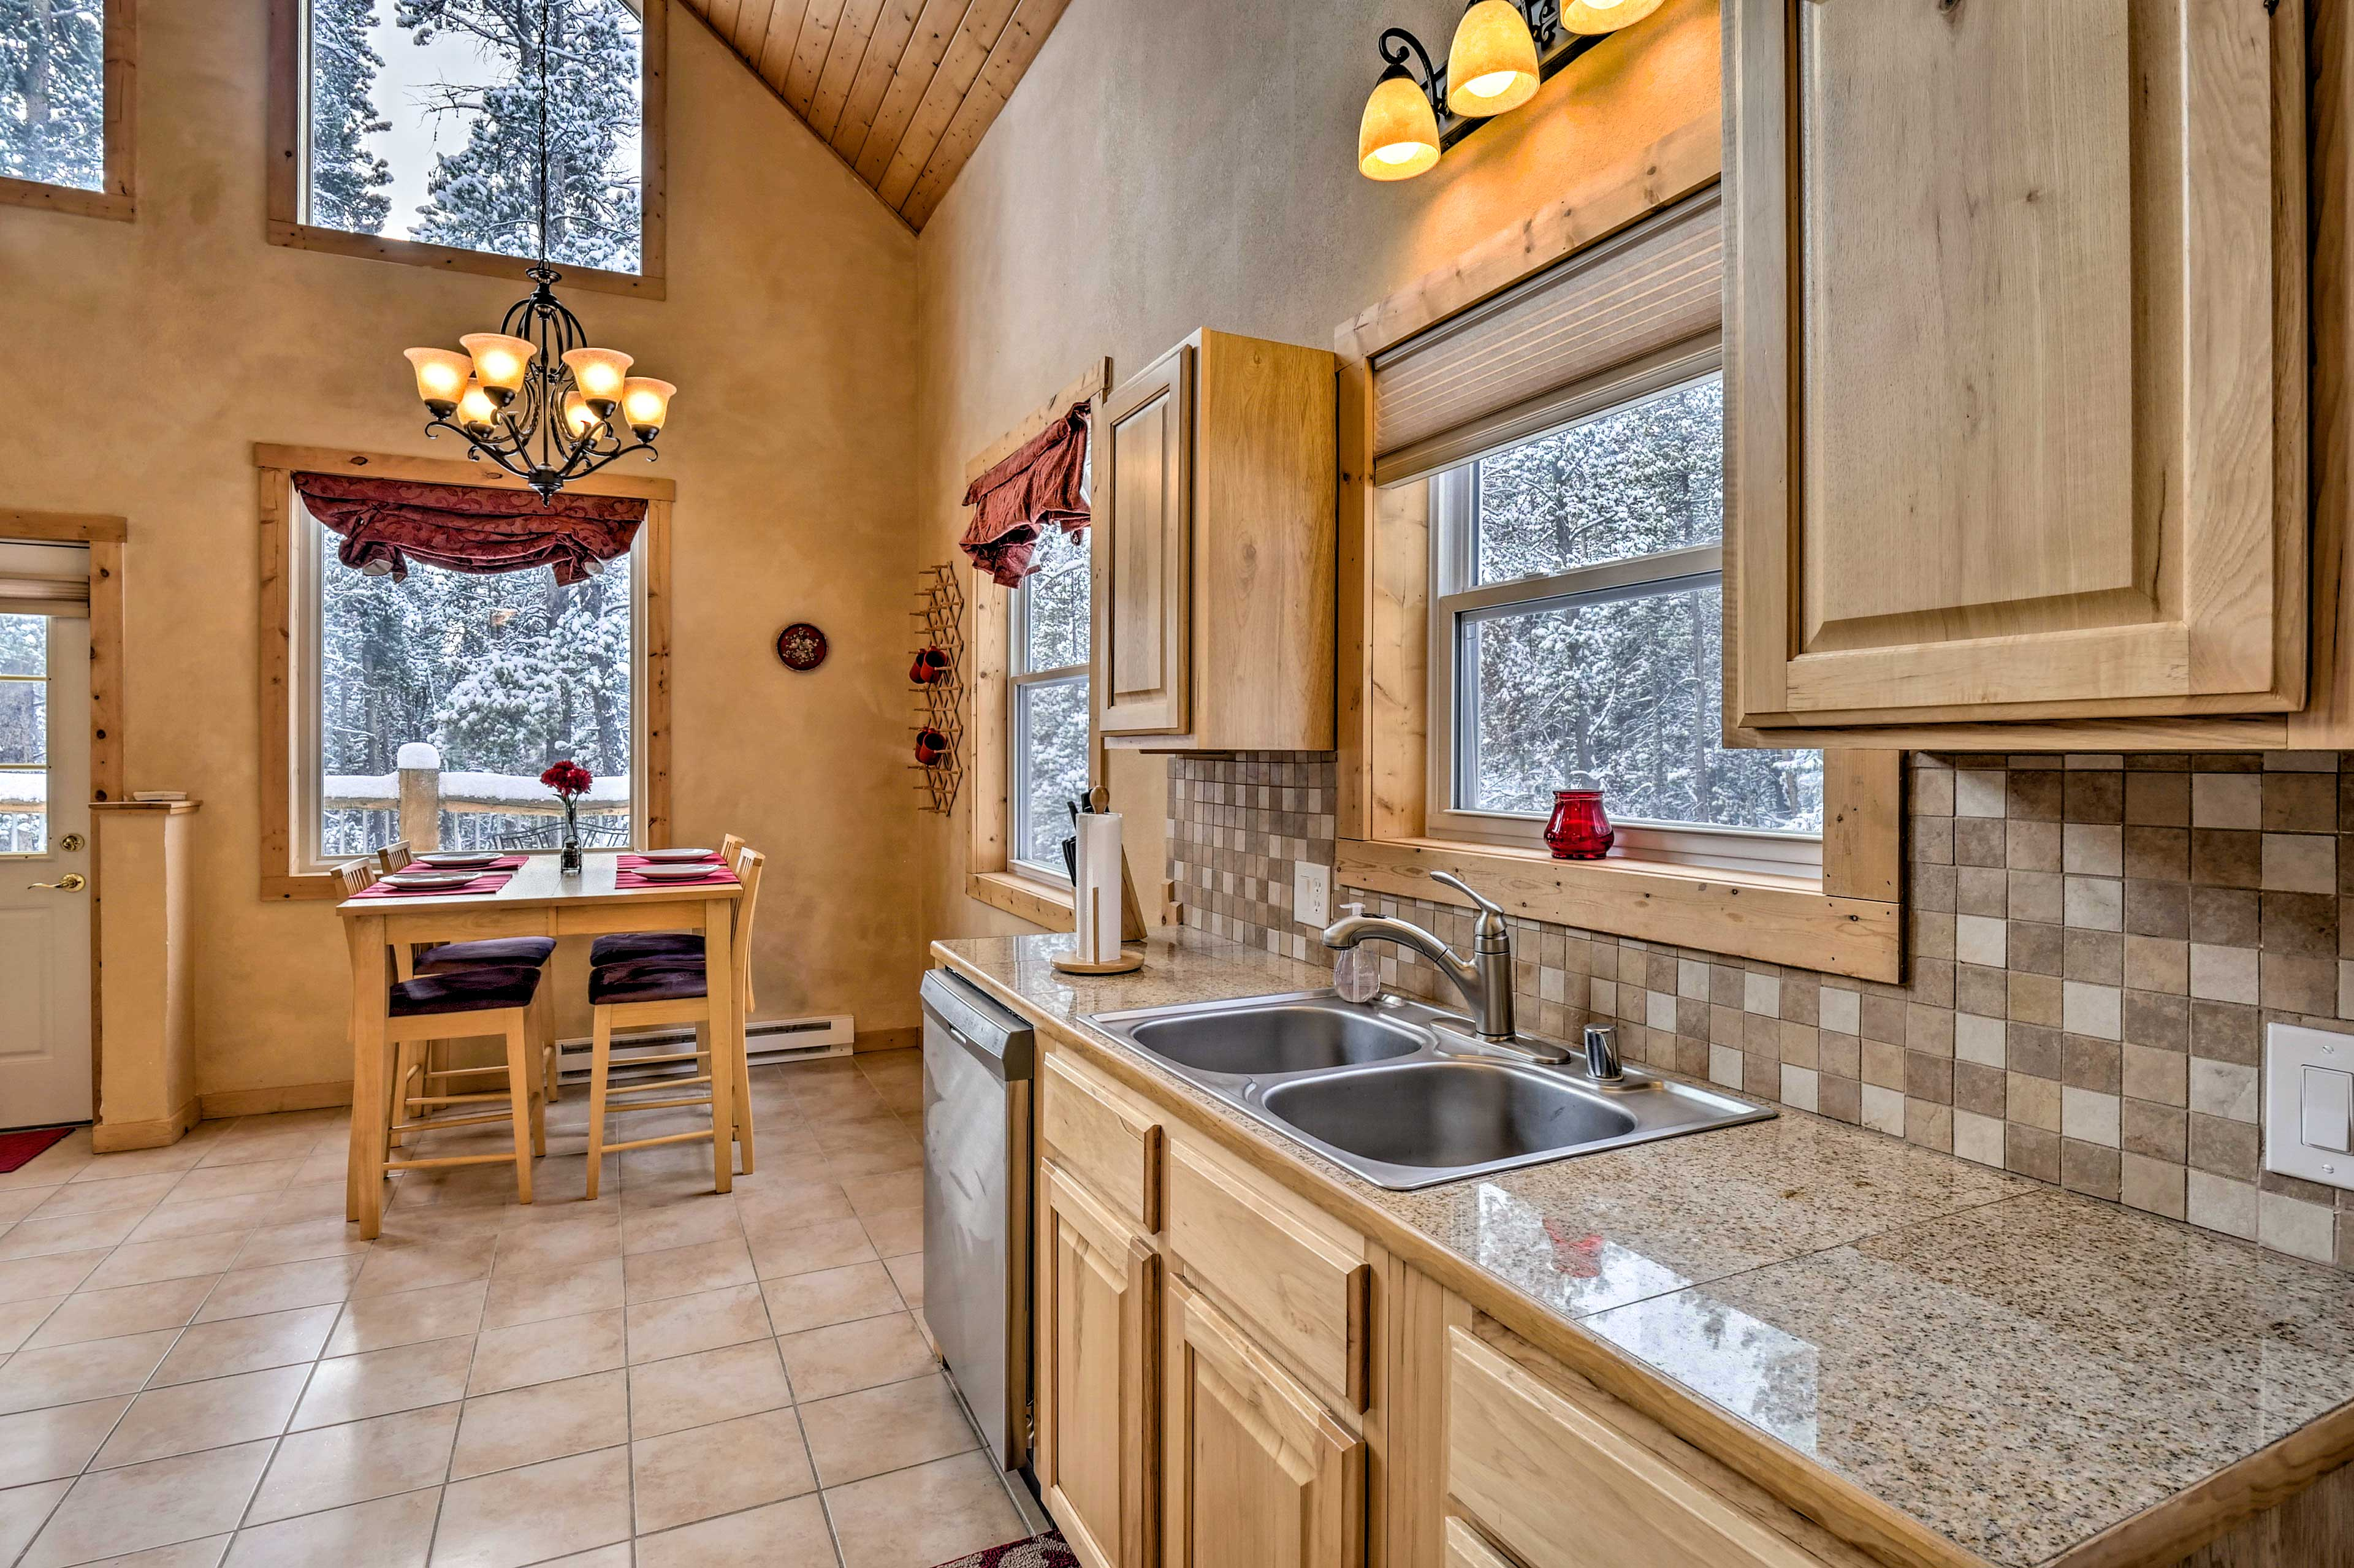 The spacious kitchen allows for easy meal collaboration.